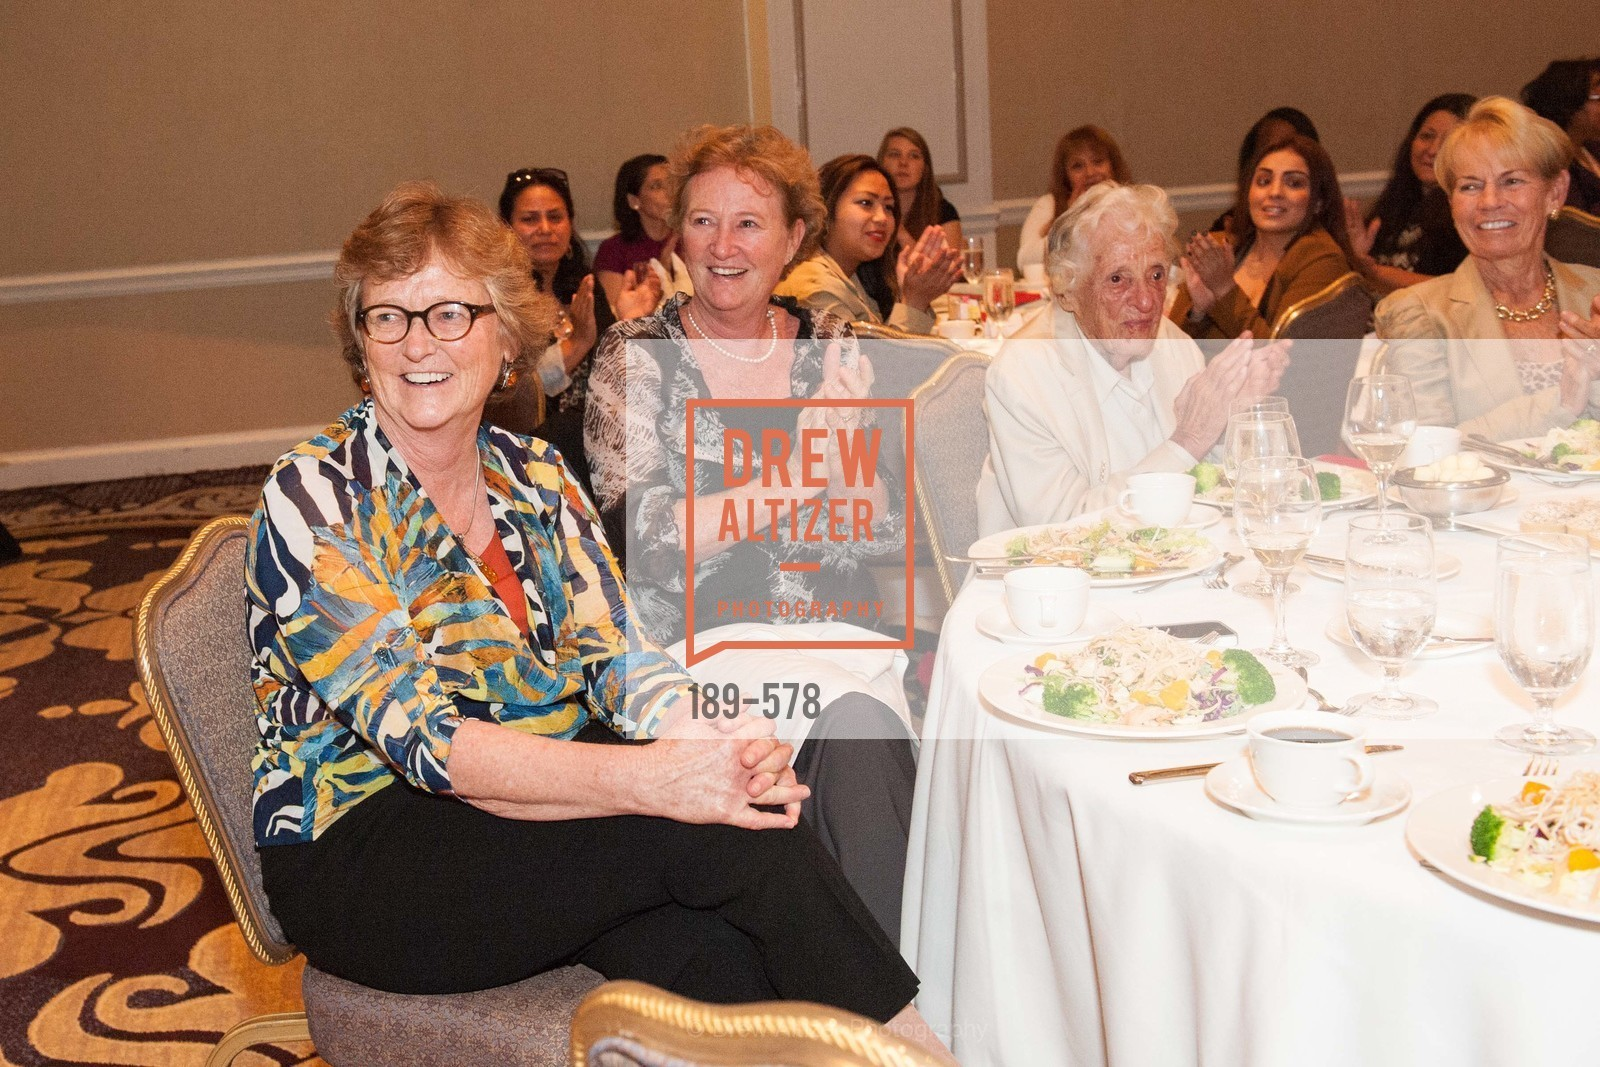 Martha Ryan, Aileen Ryan, Kate Ryan, HOMELESS PRENATAL Annual Luncheon 2014, US, September 30th, 2014,Drew Altizer, Drew Altizer Photography, full-service agency, private events, San Francisco photographer, photographer california